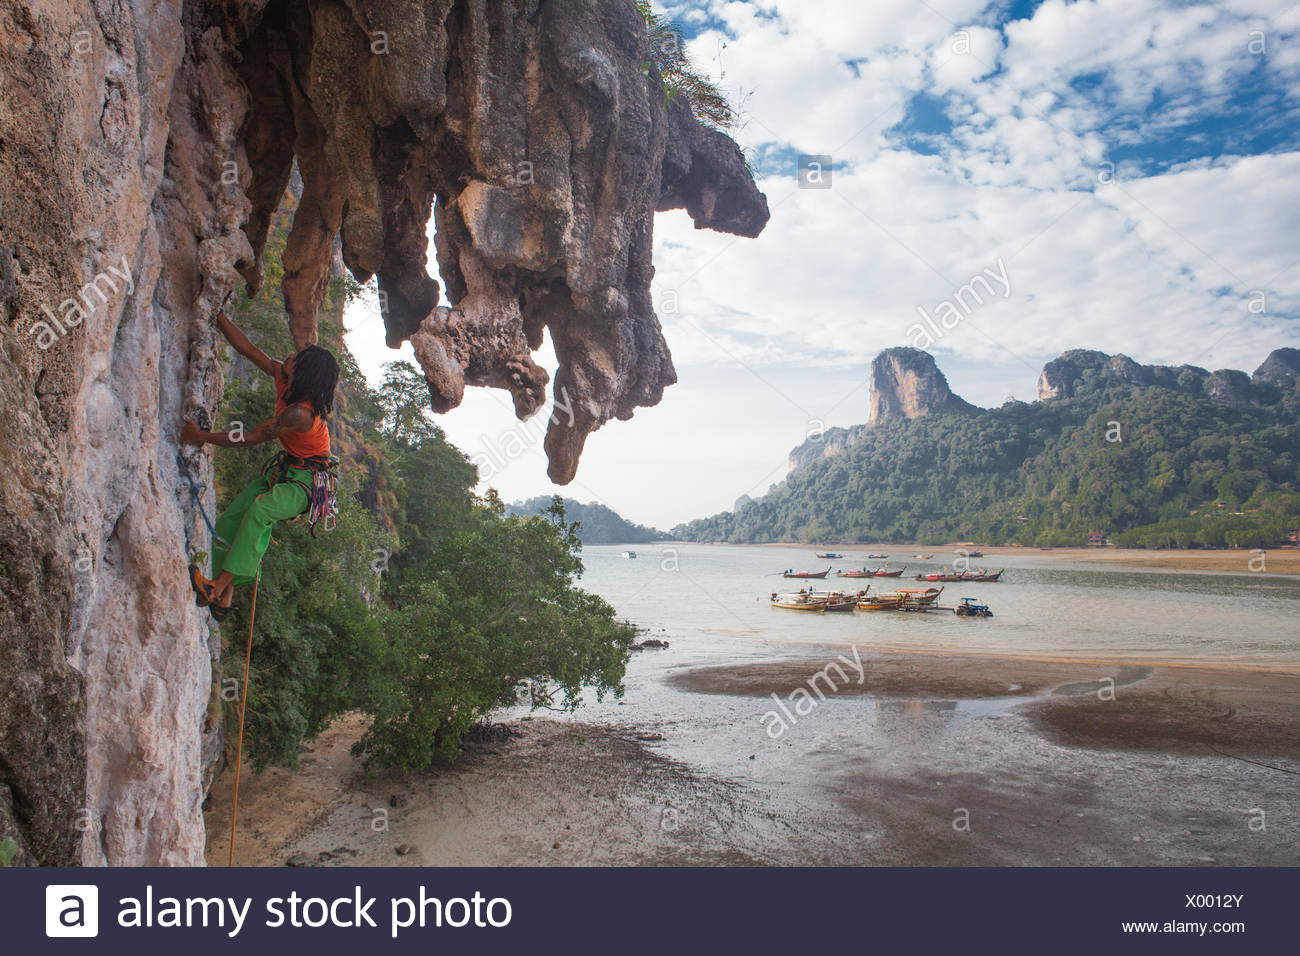 A climber on the 1,2,3, wall in Railay, Thailand. - Stock Image